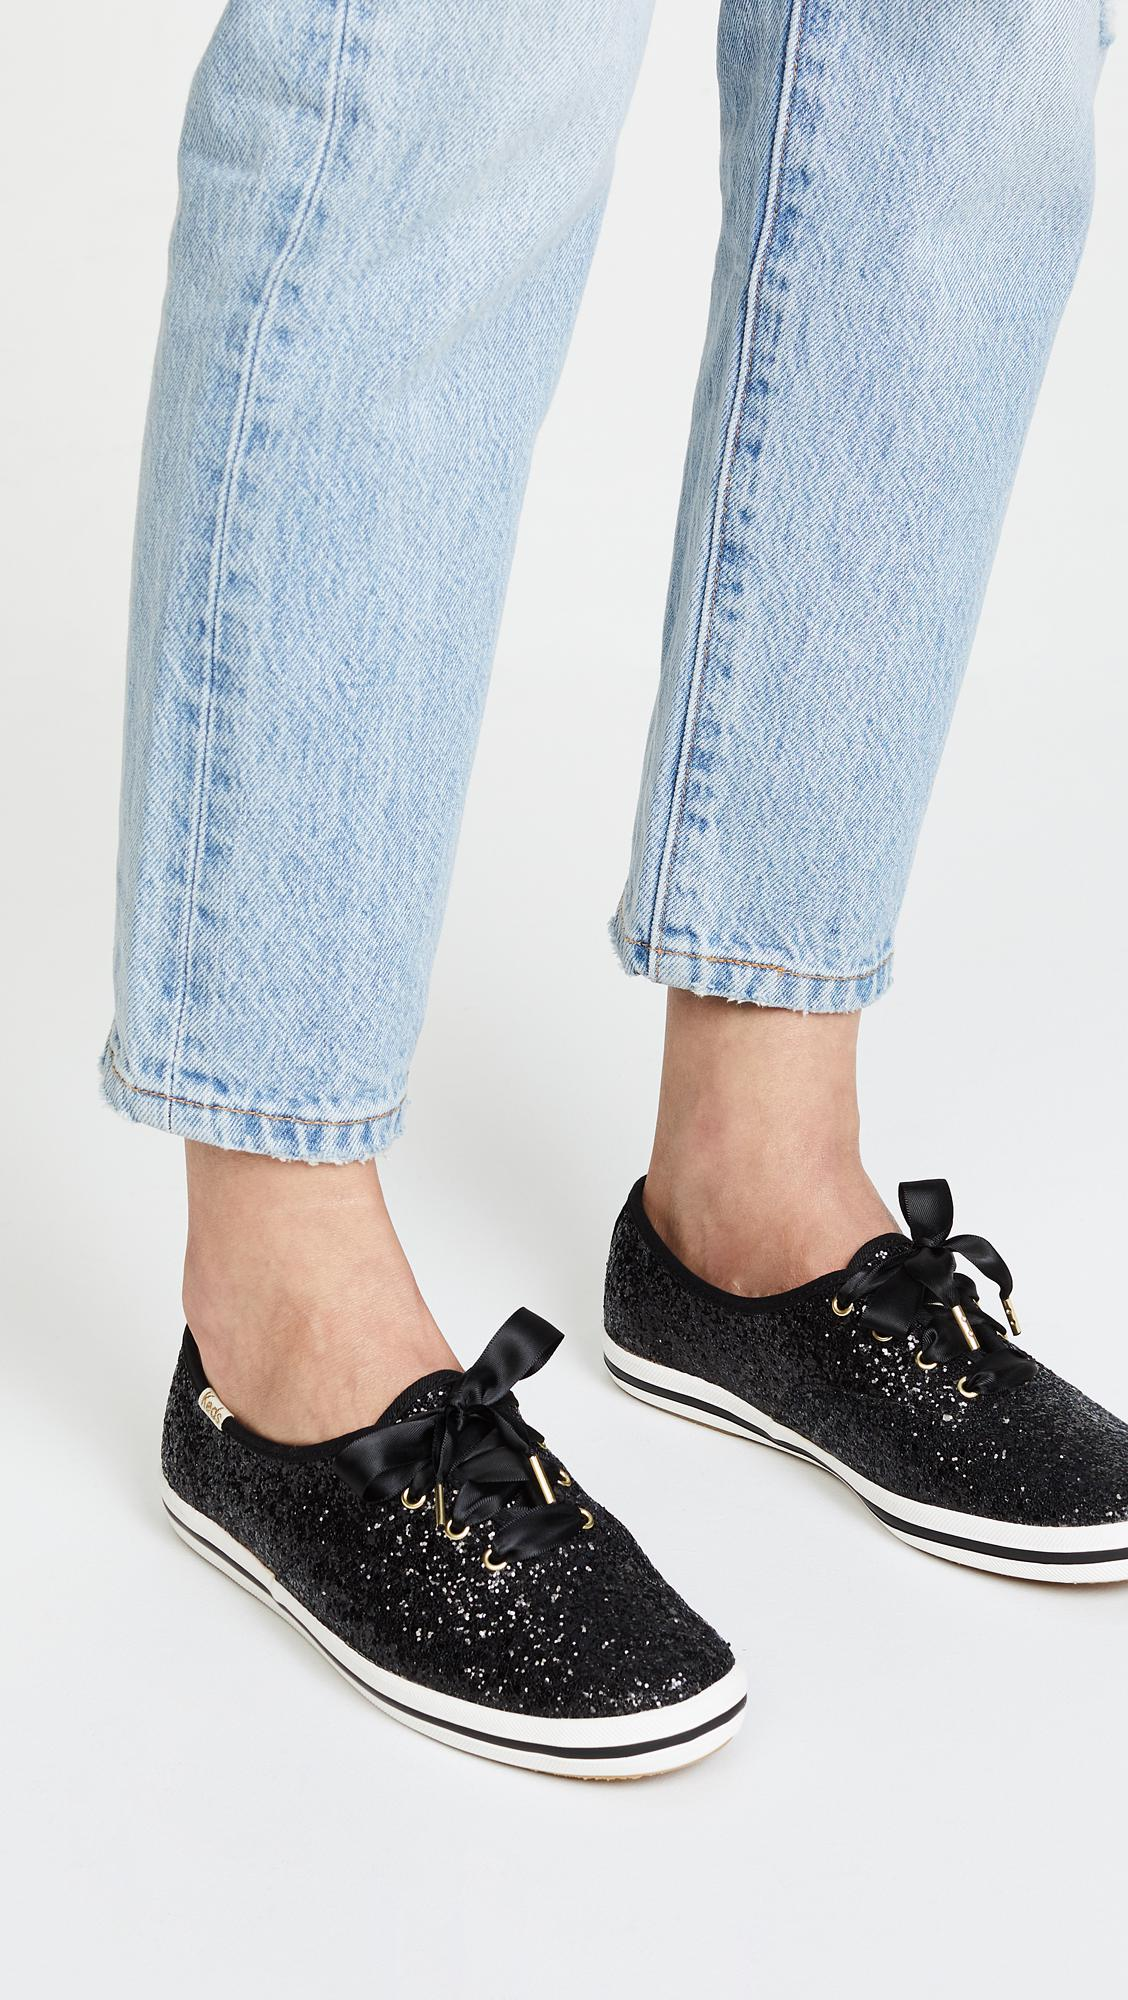 f68ebc123f29 Keds - Black X Kate Spade New York Glitter Sneakers - Lyst. View fullscreen